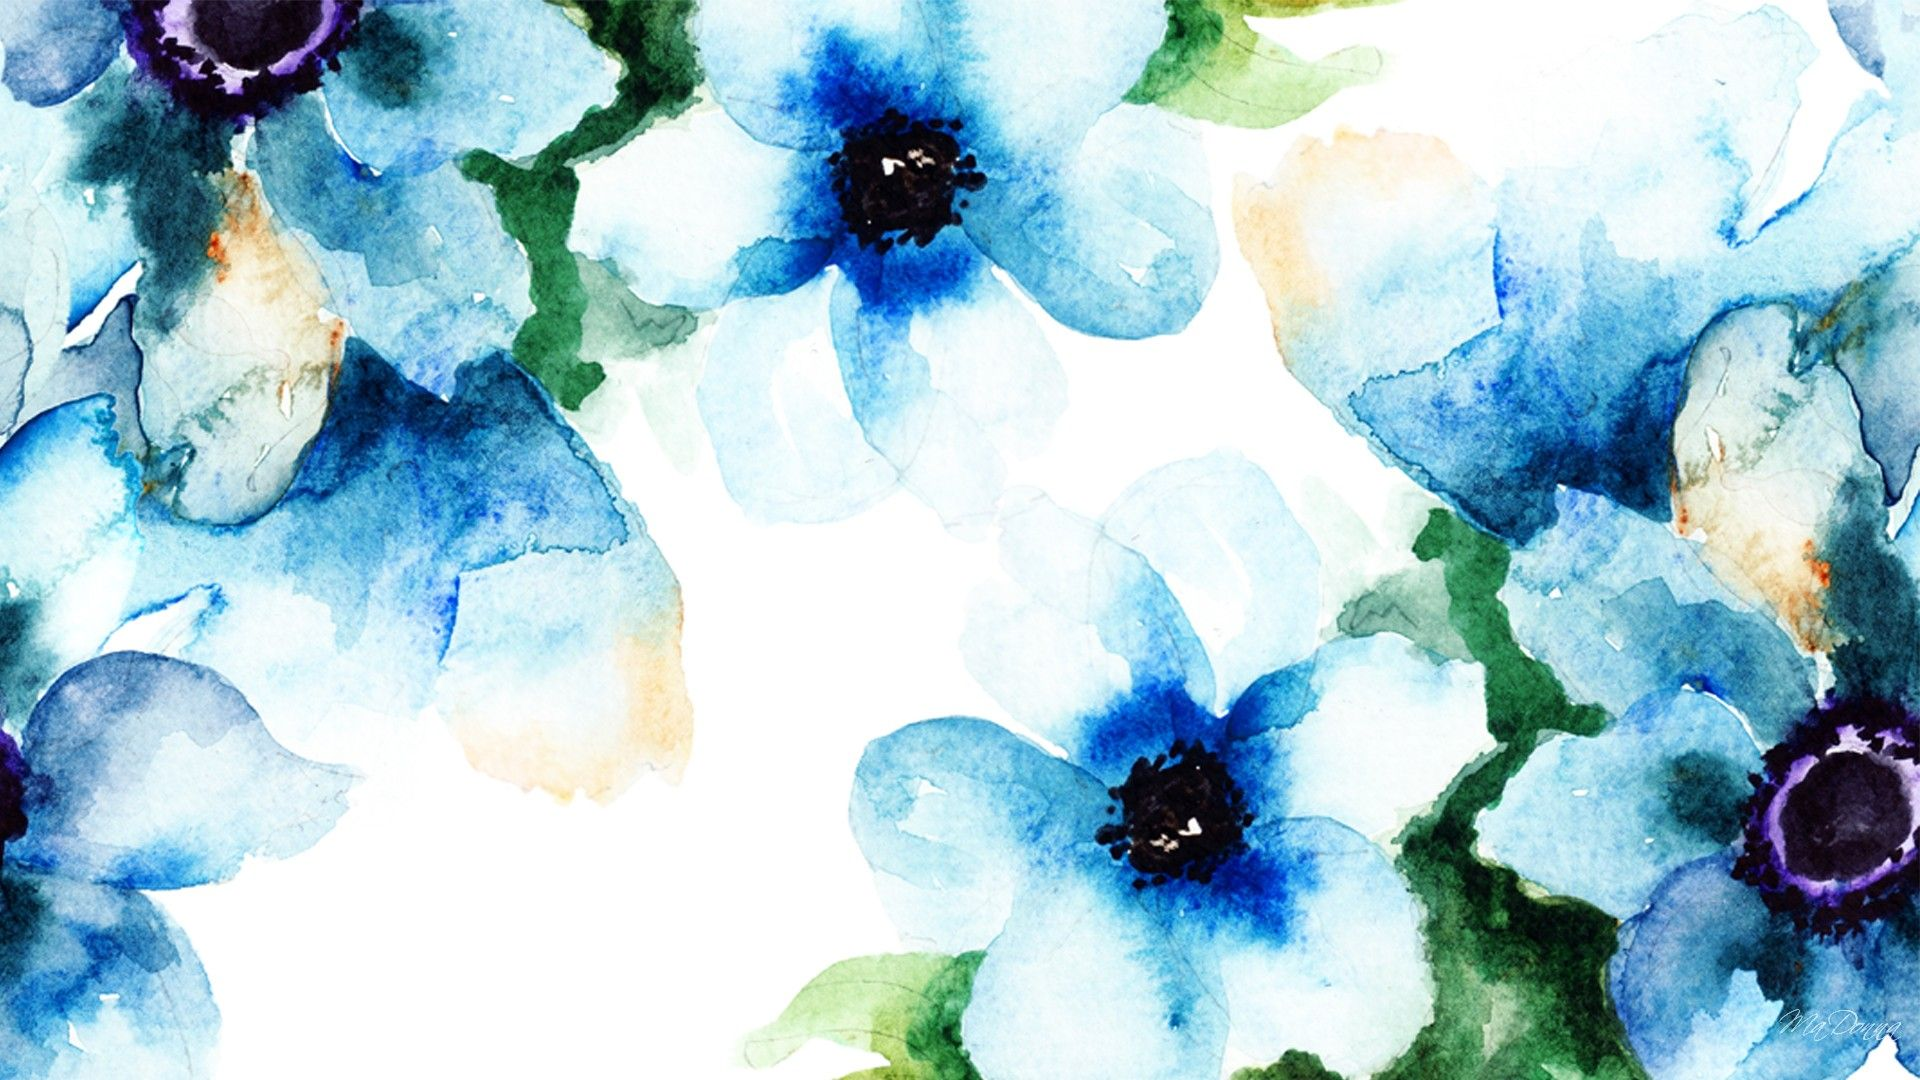 Watercolor Wallpaper Images All Wallpaper Desktop 1920x1080 Px